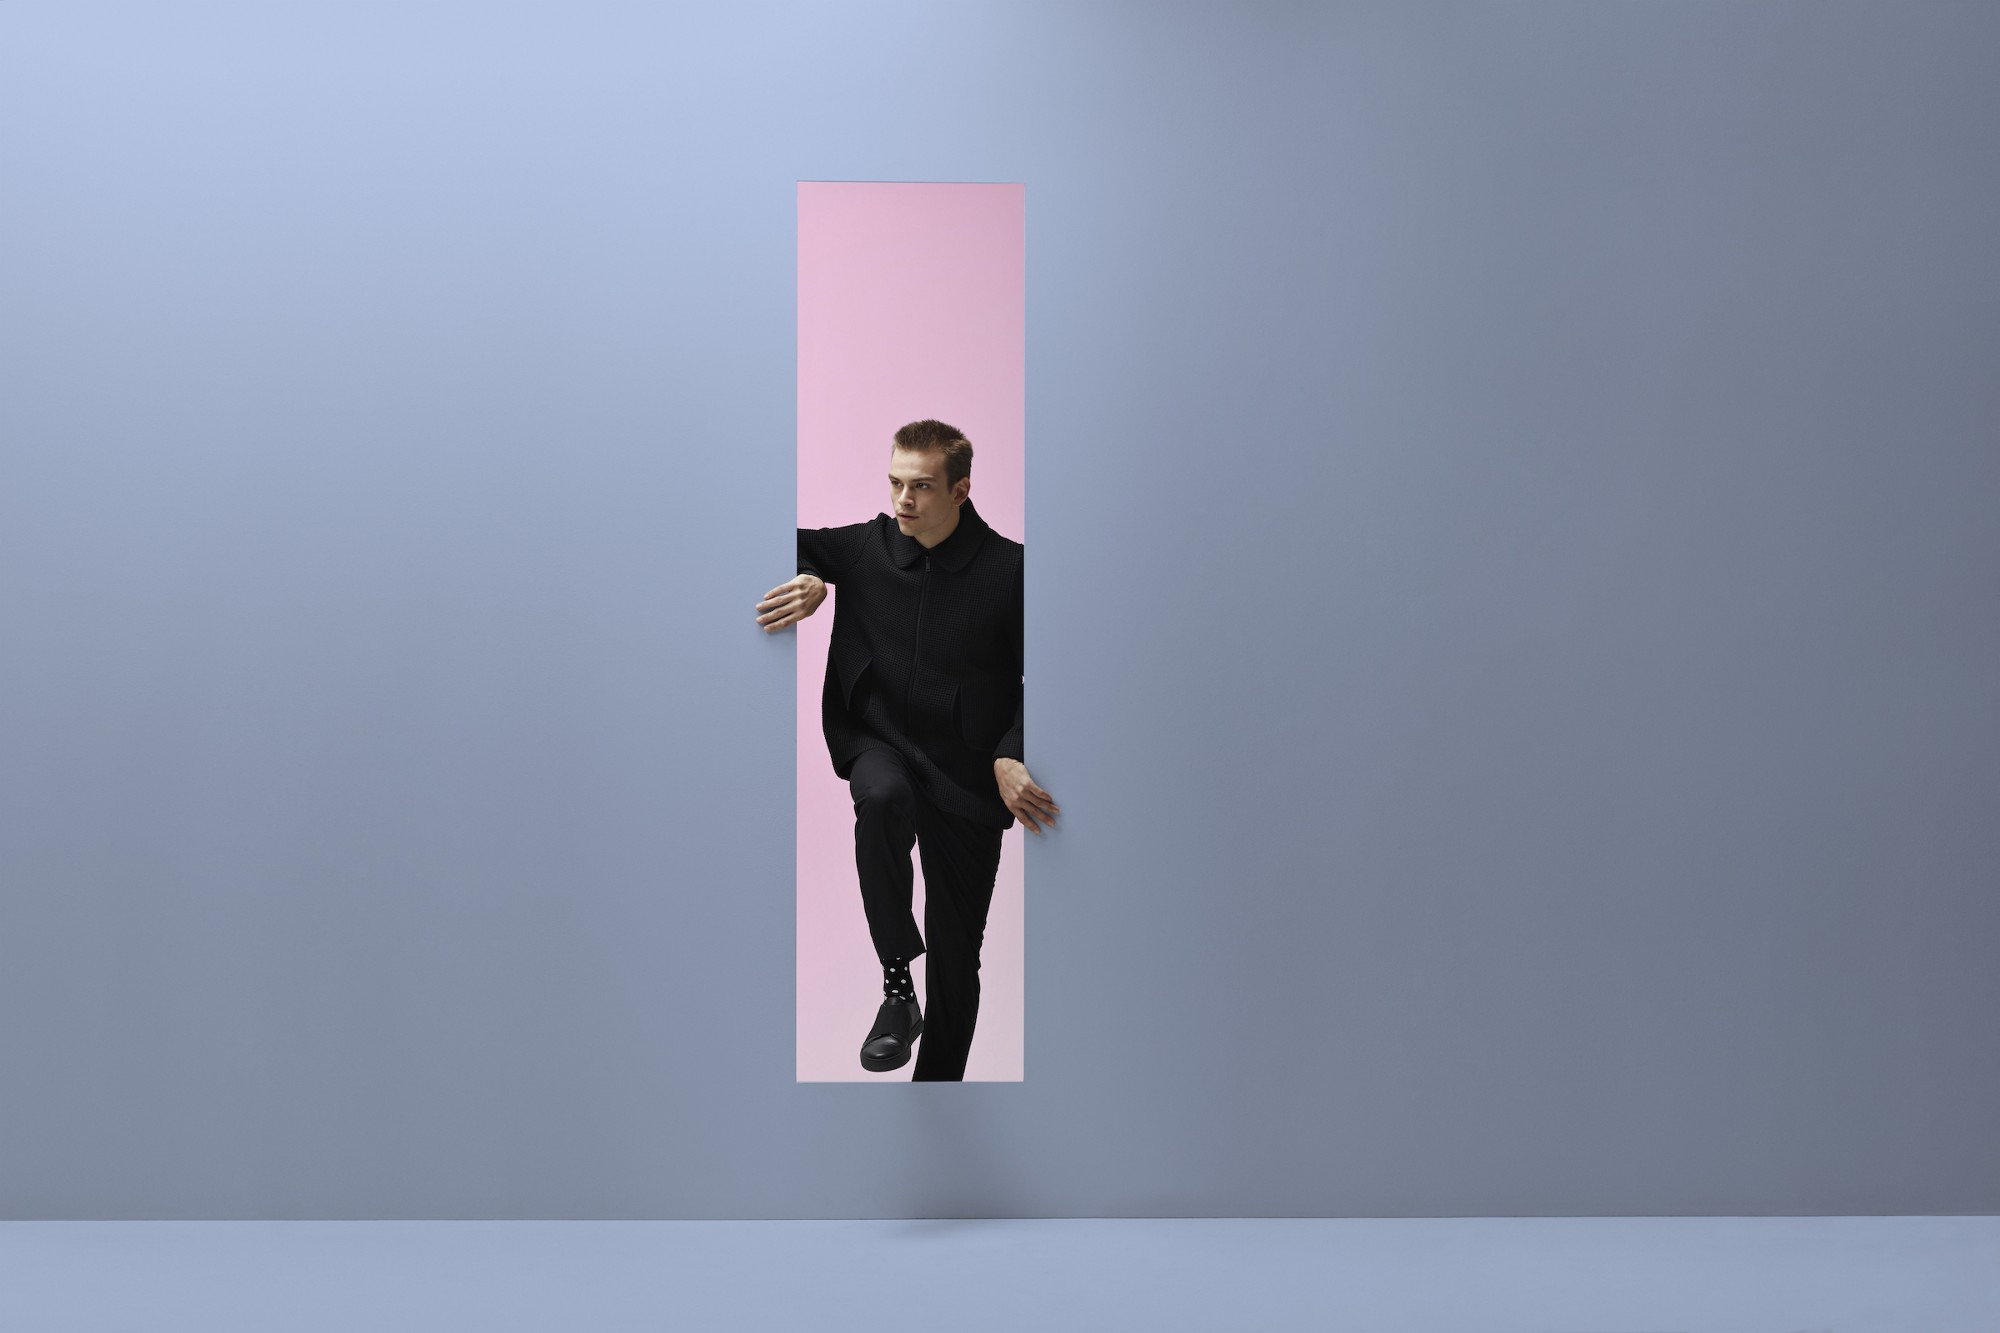 A masculine-appearing person emerging from a pink room into a blue room through a vertical rectangular opening in the wall.